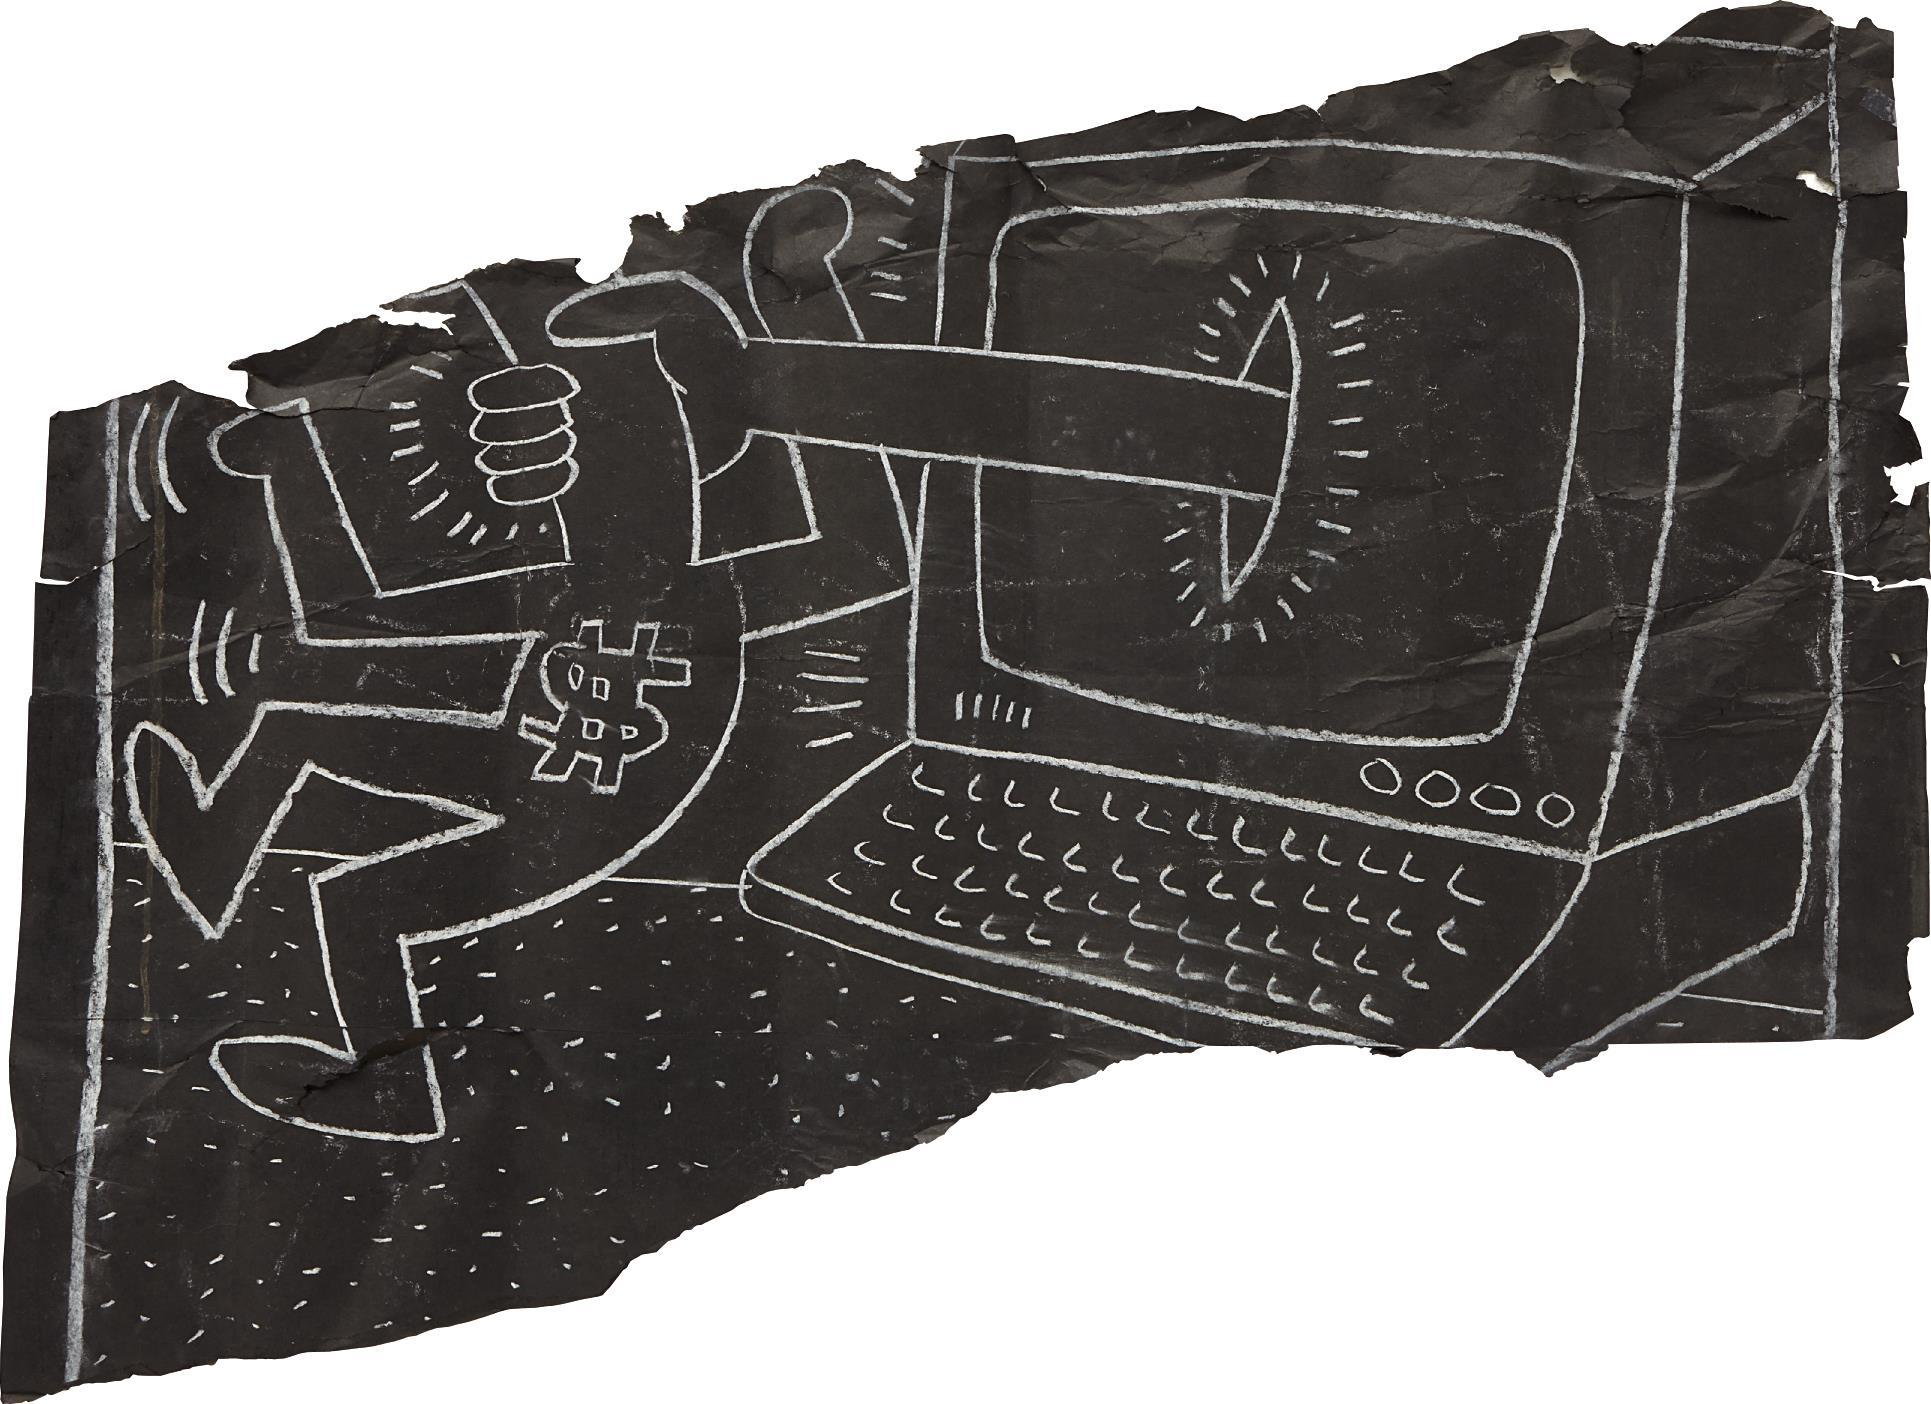 It's Not a Laptop by Keith Haring